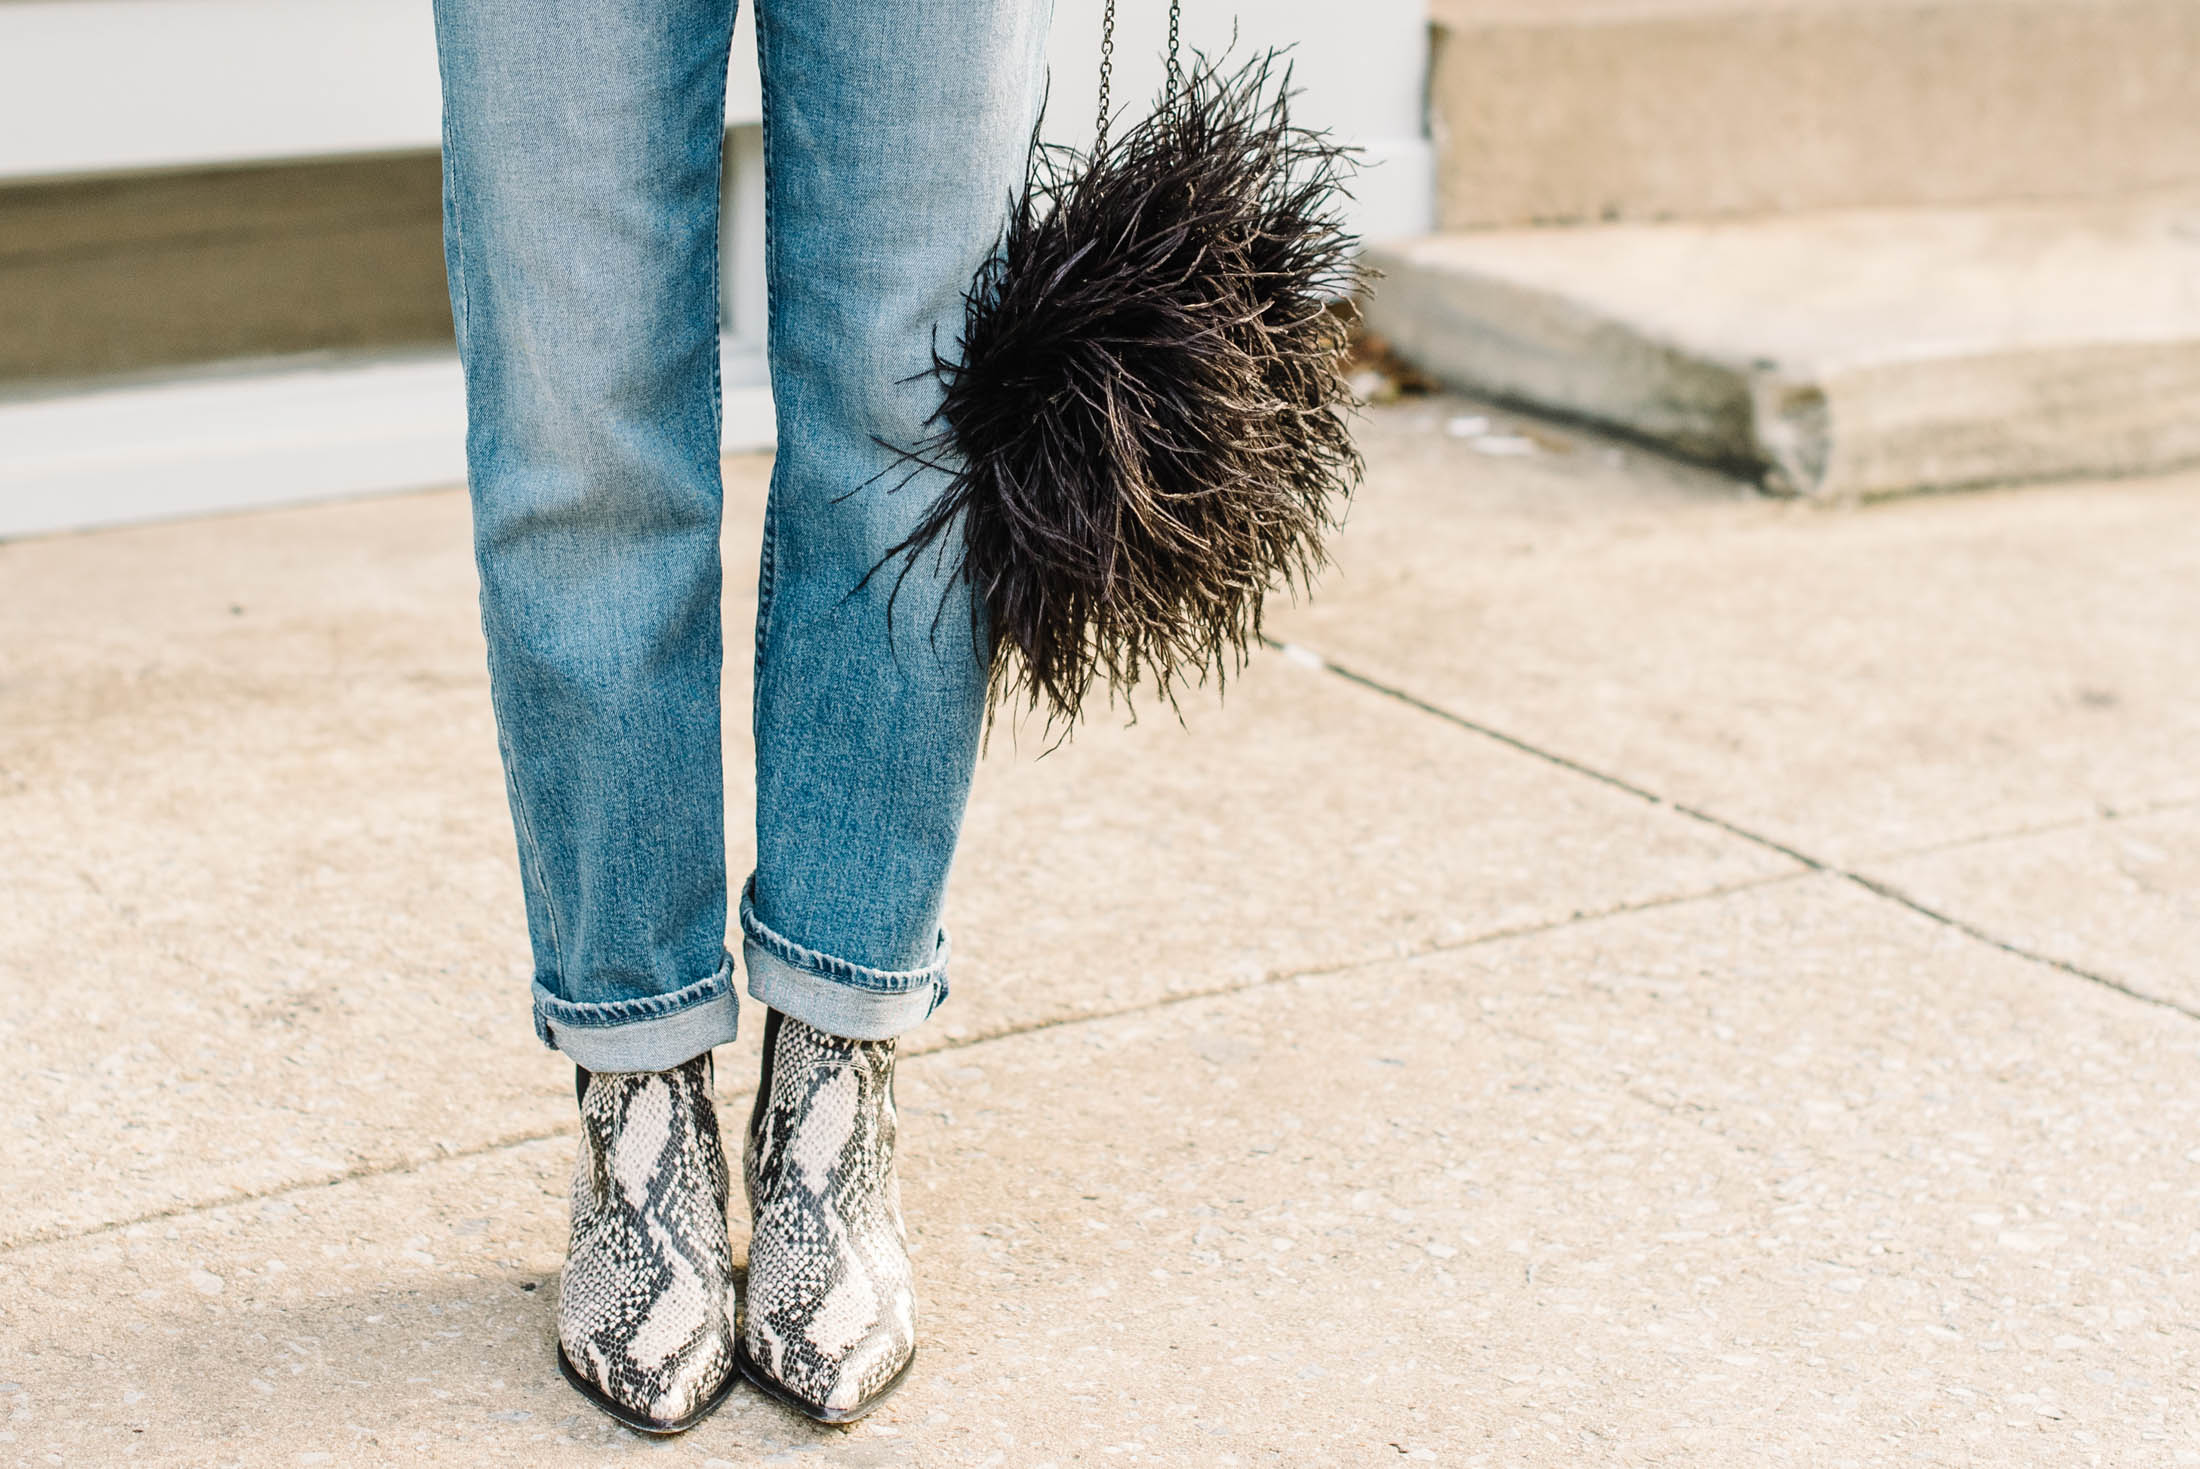 Western booties may just be the shoe to take us into Spring & rock in the Summer — wear 'em with mom jeans, boyfriend jeans & non-skinny denim...yes!